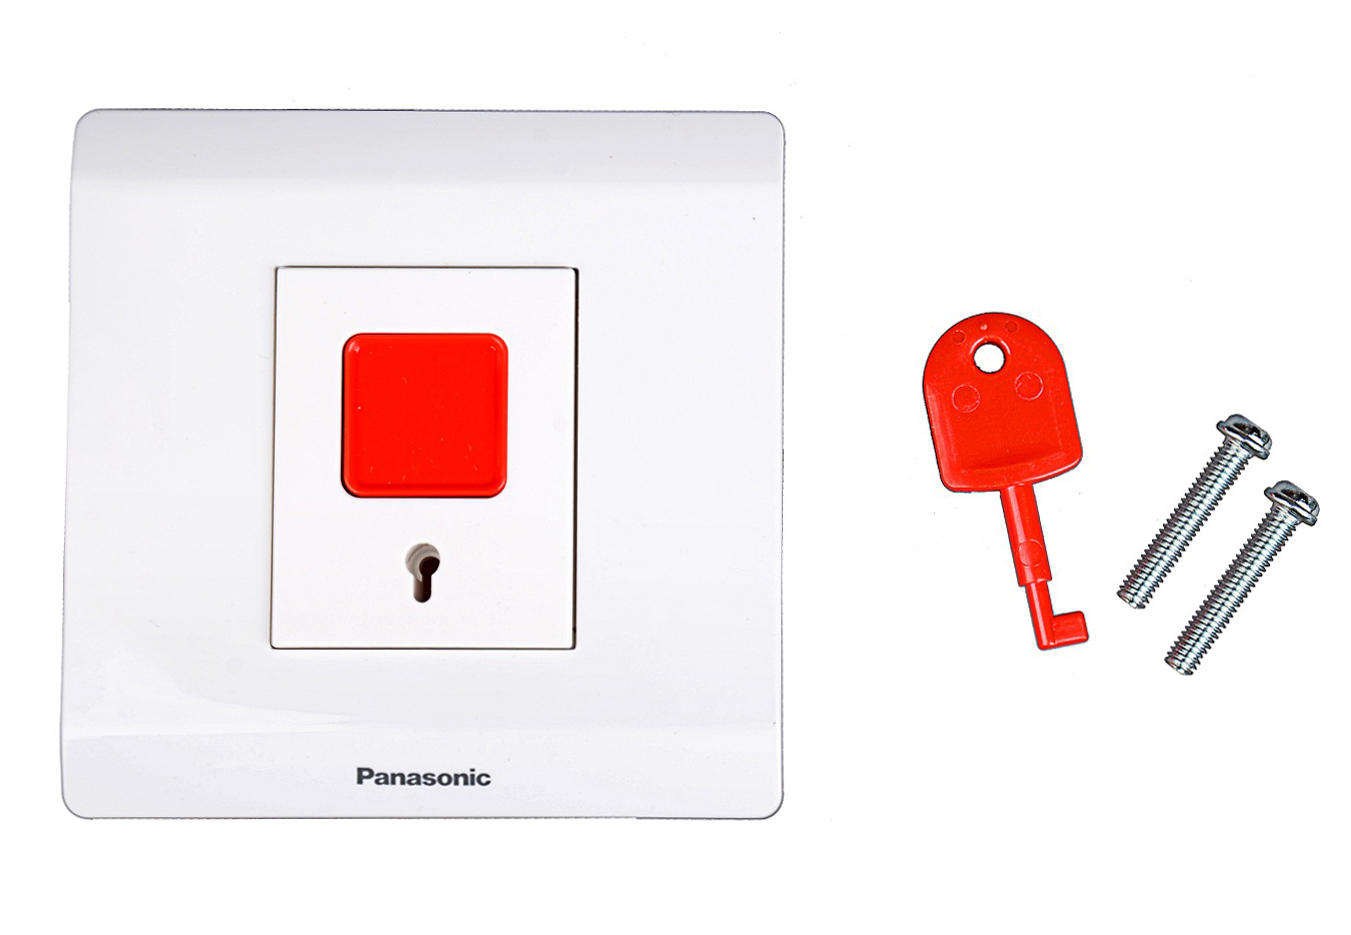 Panasonic switch socket panel genuine Monopoly / Panasonic alarm button switch Panasonic emergency button switch